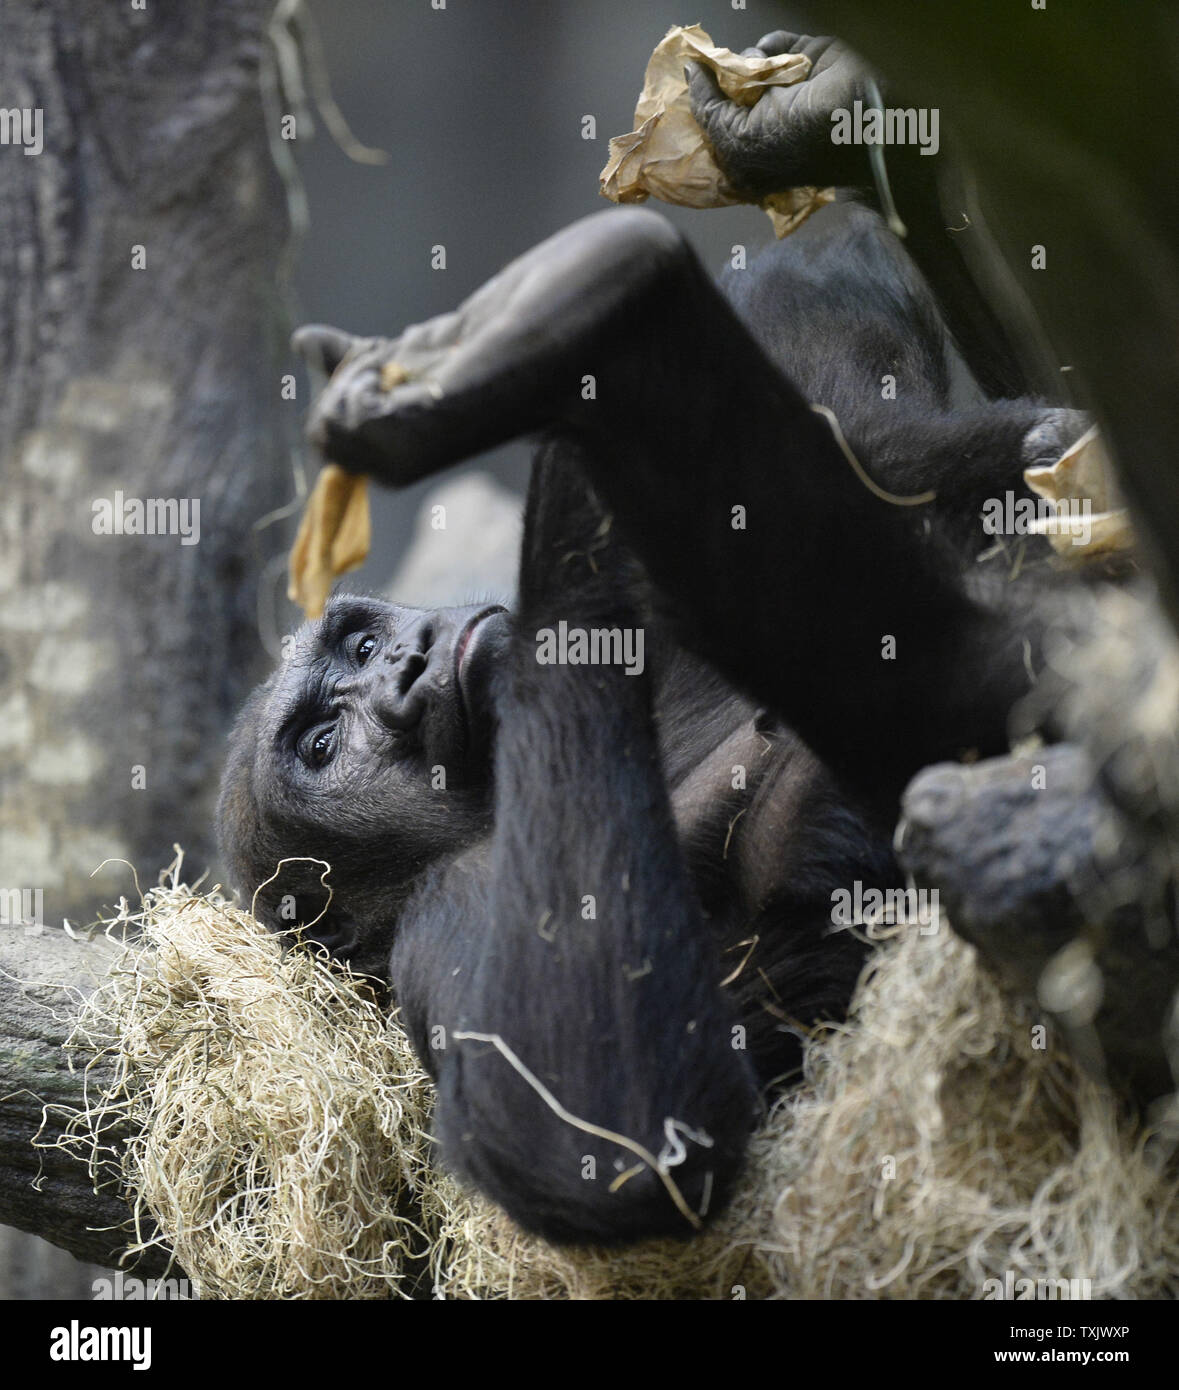 Binti Jua, an 25-year-old western lowland gorilla and grandmother of a newborn female, relaxes in her habitat at the Brookfield Zoo's Tropic World exhibit in Brookfield, Illinois on November 6, 2013. The infant was born on November 4 to 18-year-old Koola at the Chicago area zoo. In 1996, a three-year old boy fell into the gorilla habitat at the zoo and Binti Jua protected him from the other animals and carried him safely to an access door where paramedics were standing by.     UPI/Brian Kersey Stock Photo